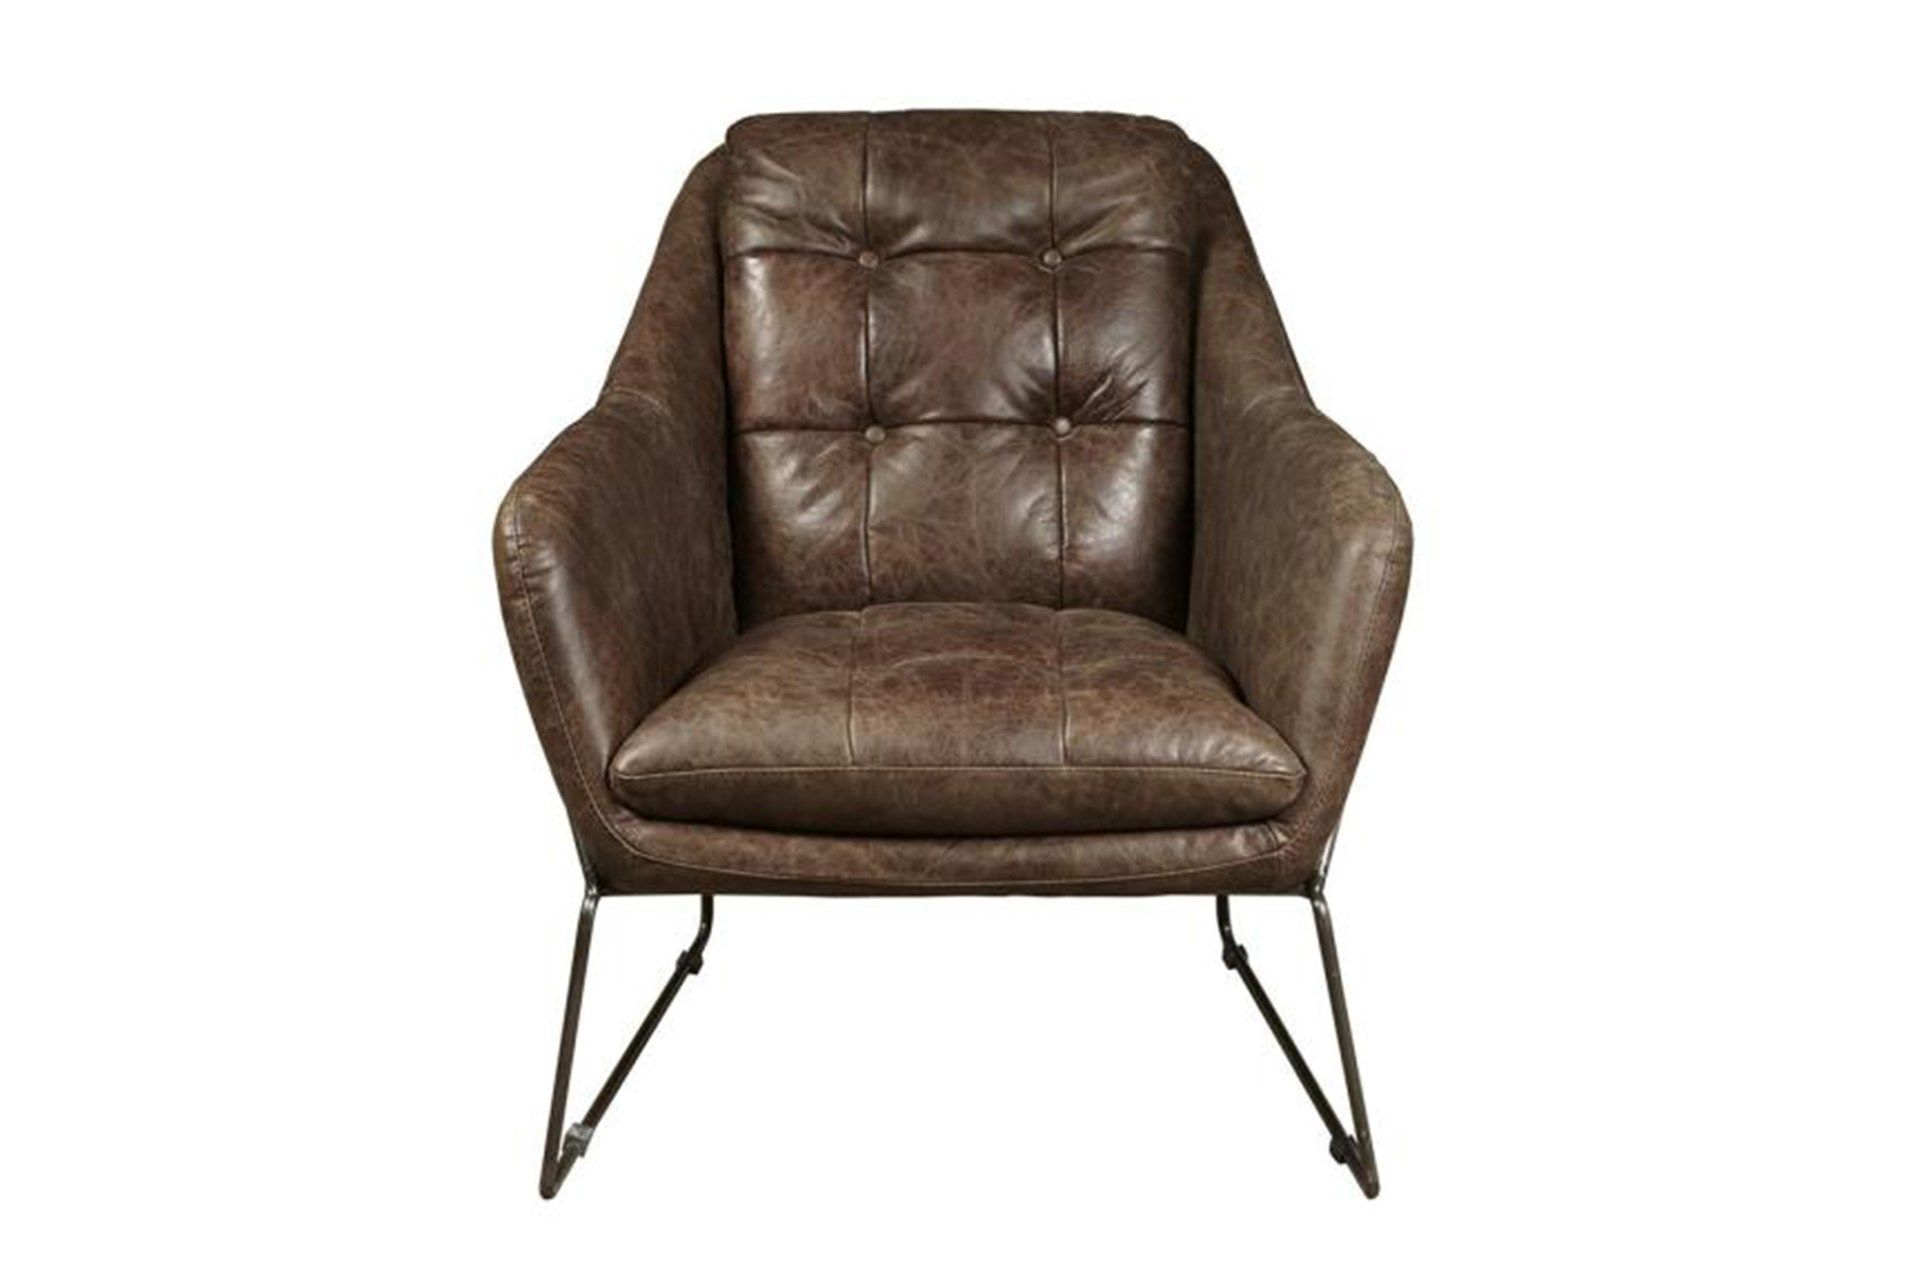 Mocha Leather & Metal Accent Chair, Brown | Metal Accents, Metals Within Harbor Grey Swivel Accent Chairs (Photo 12 of 20)